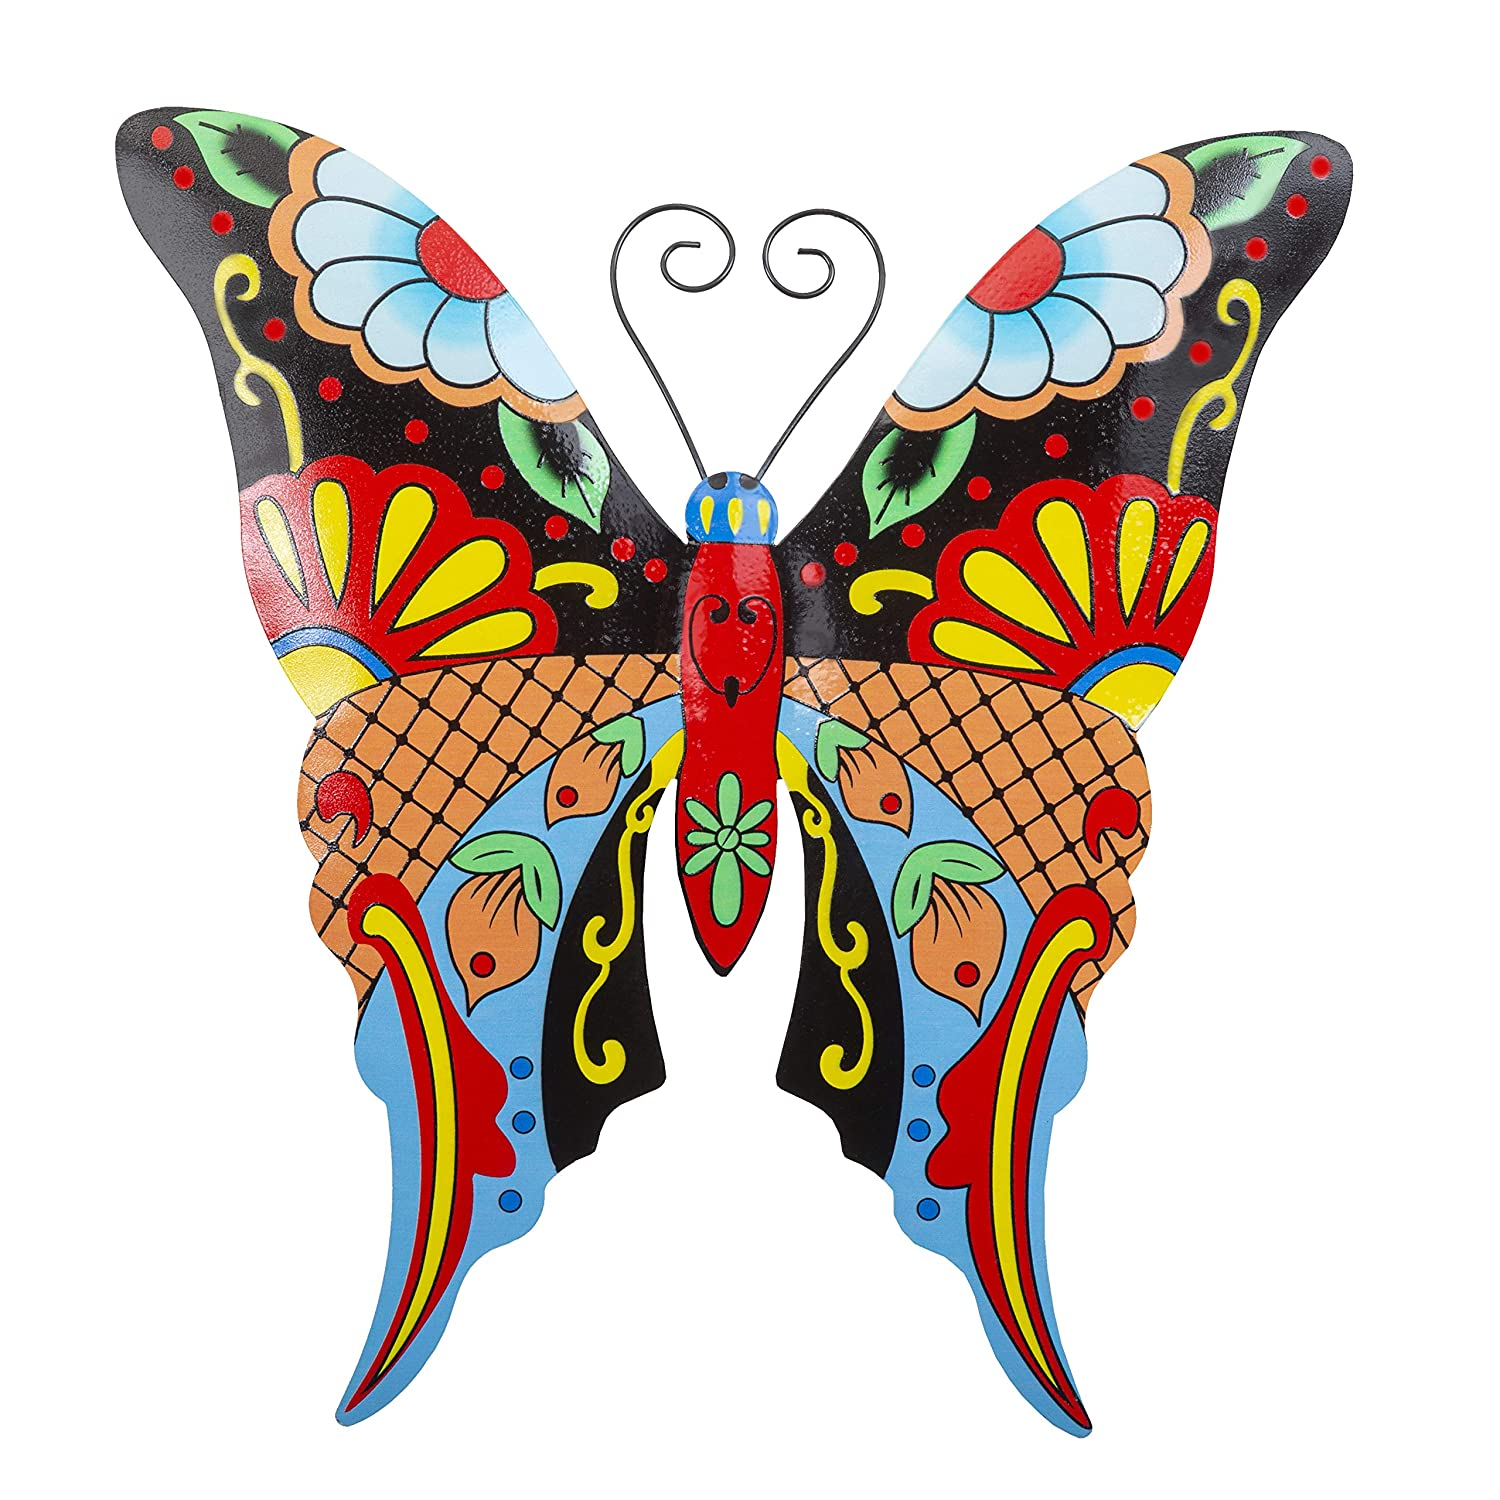 Whimsical Butterfly Metal Wall Art | Talavera-Style Home Decor | Stylish Wall Decorations for Living Room, Kitchen, Outdoors, Office, Bedroom, Garden, Bathroom | 13x12 Inches (Butterfly)